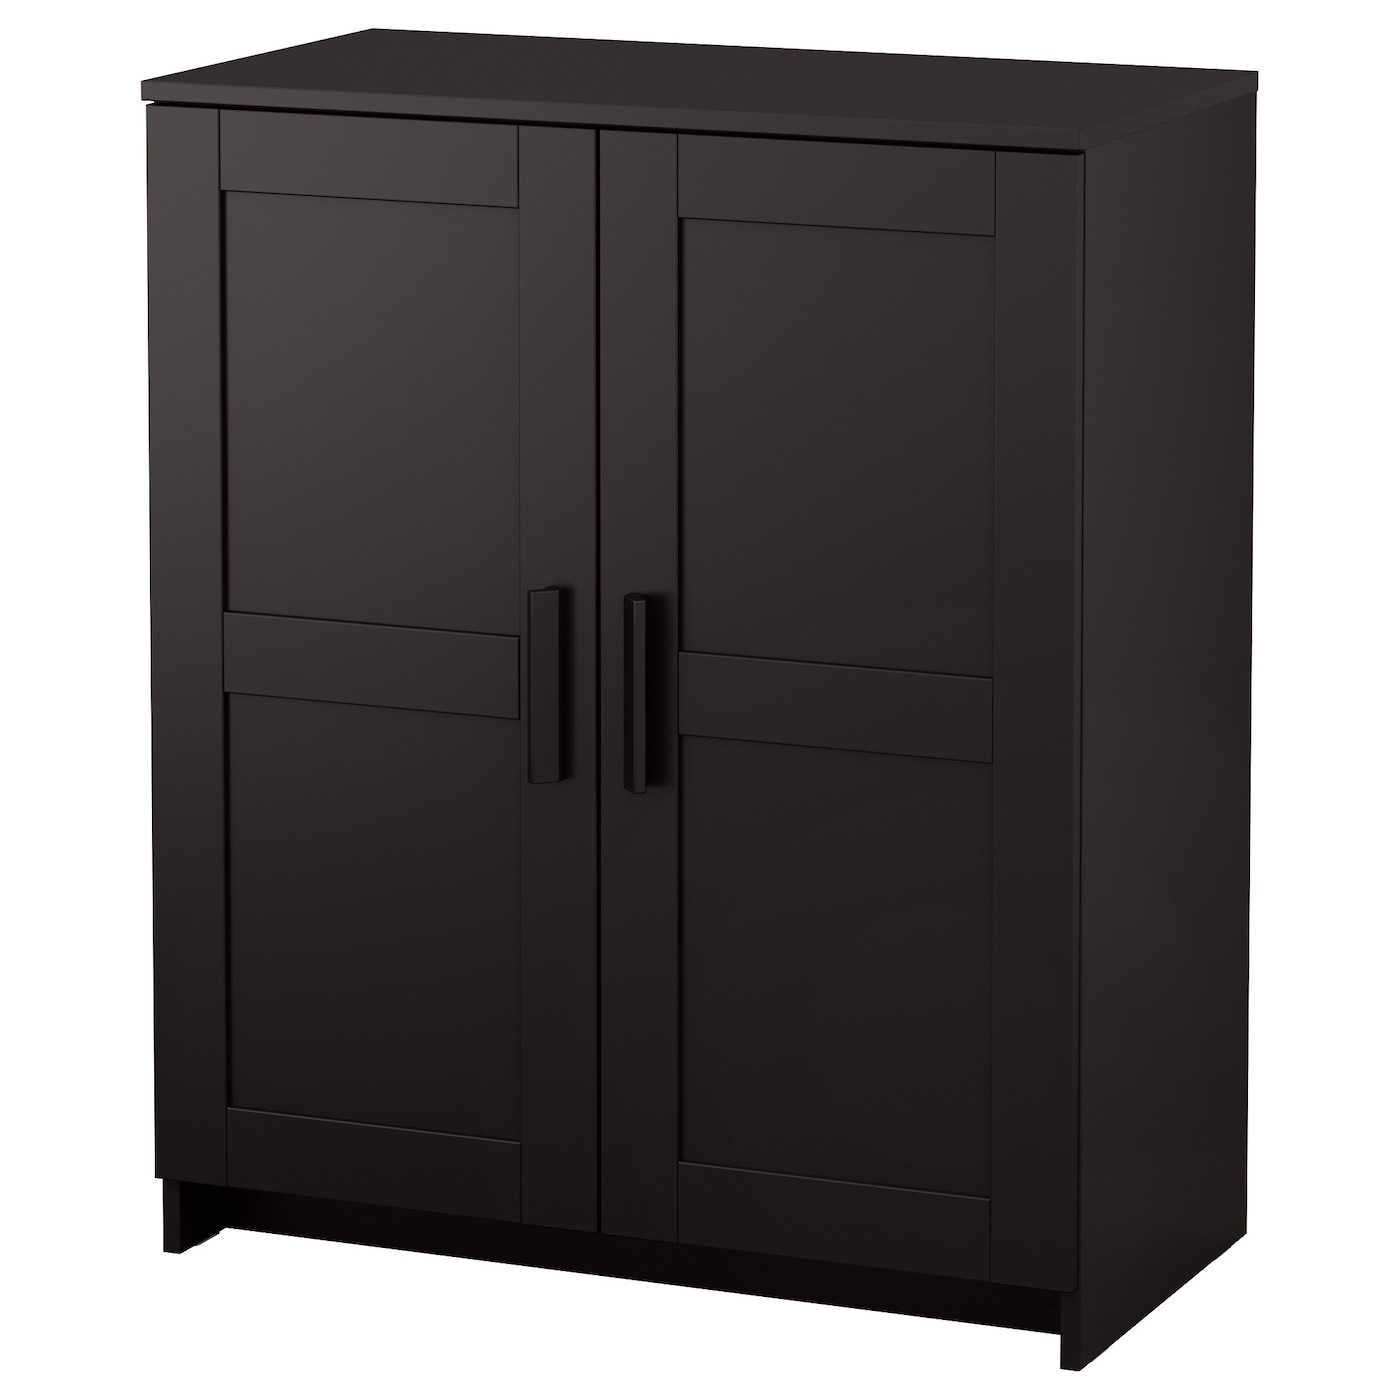 Brimnes cabinet with doors black 78x95 cm ikea for Ikea storage cabinets kitchen